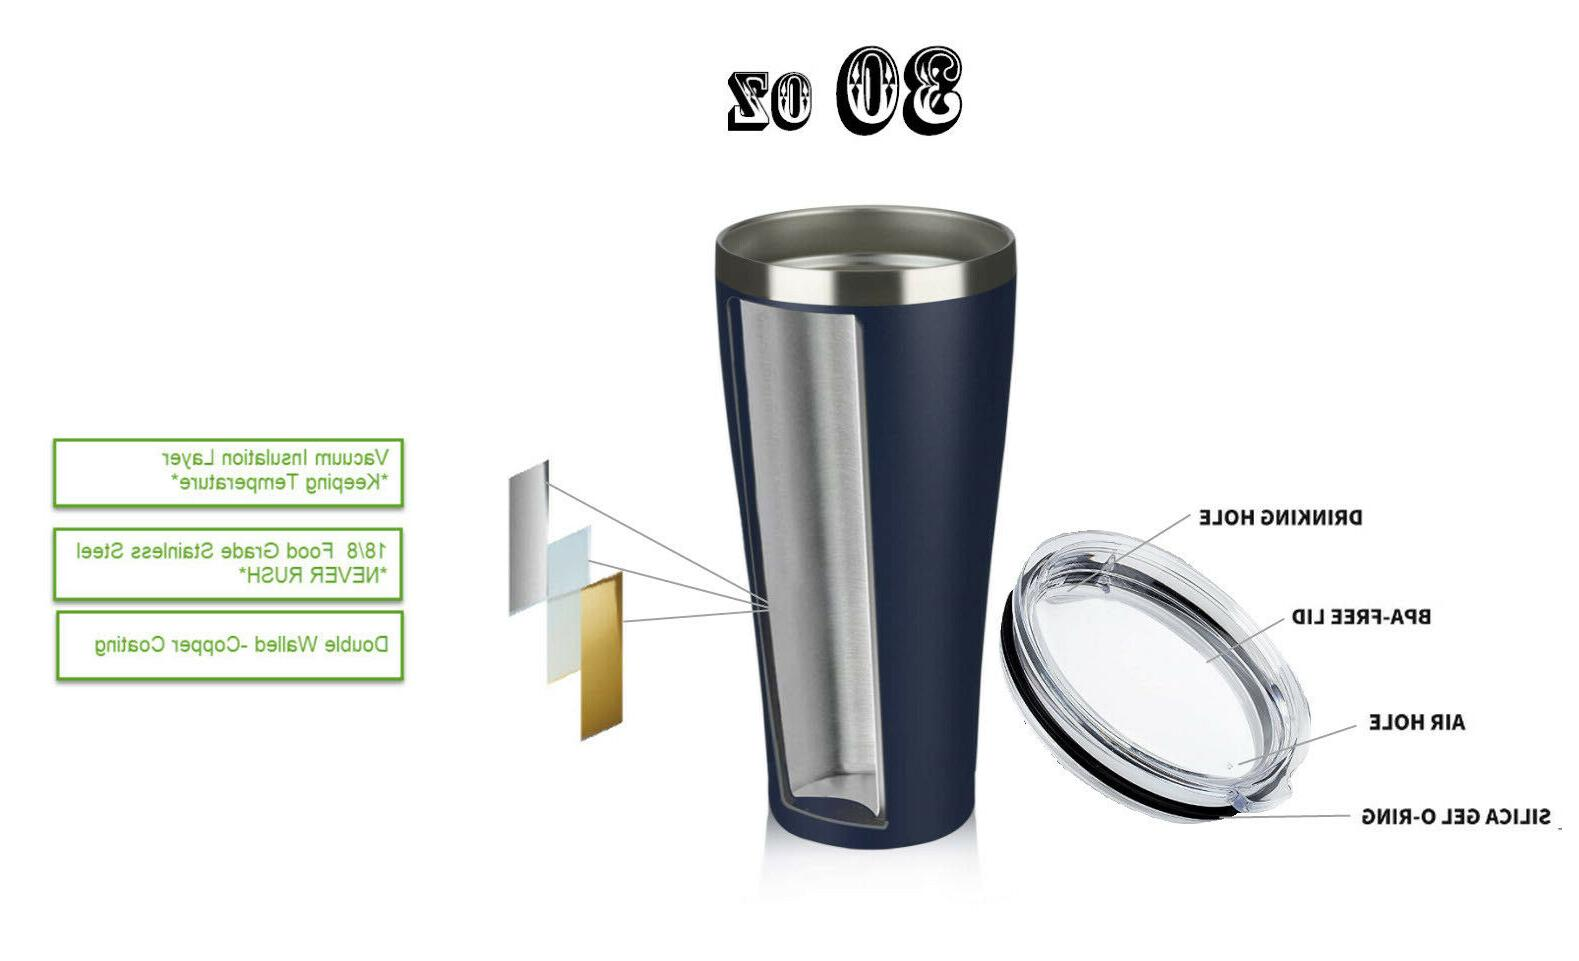 30 OZ Tumbler Insulation Travel Mug